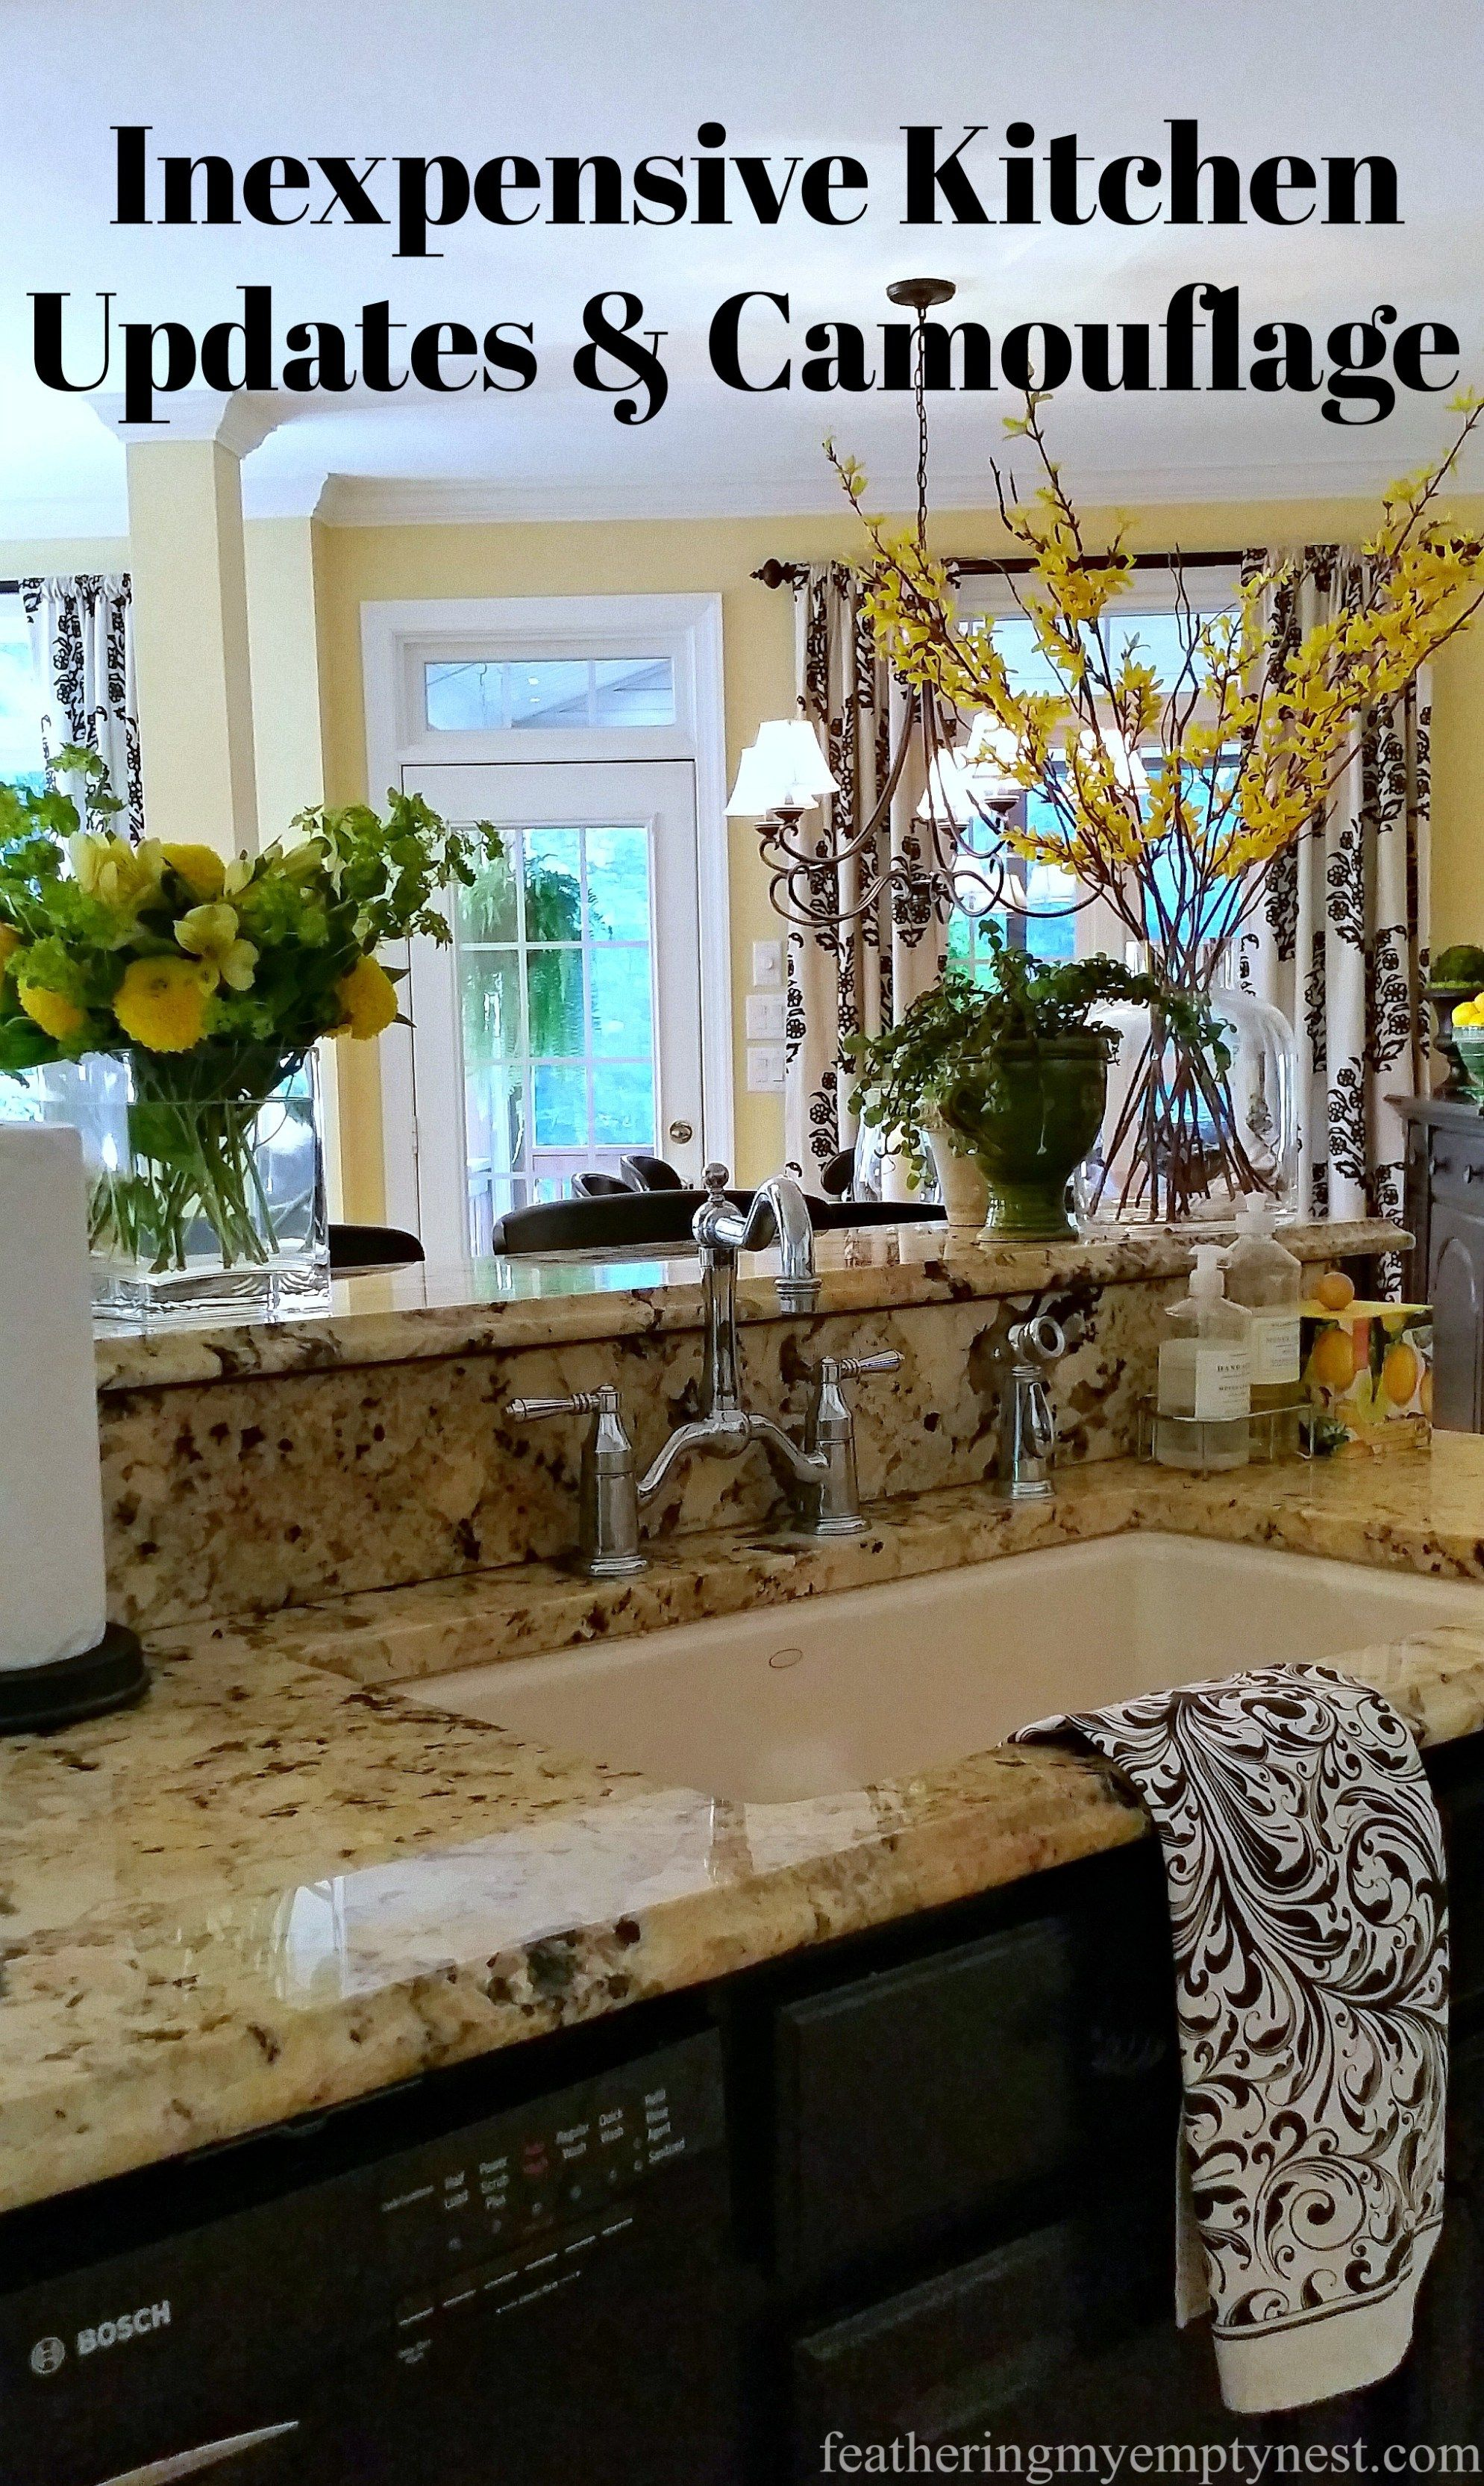 Inexpensive Kitchen Updates And Camouflage